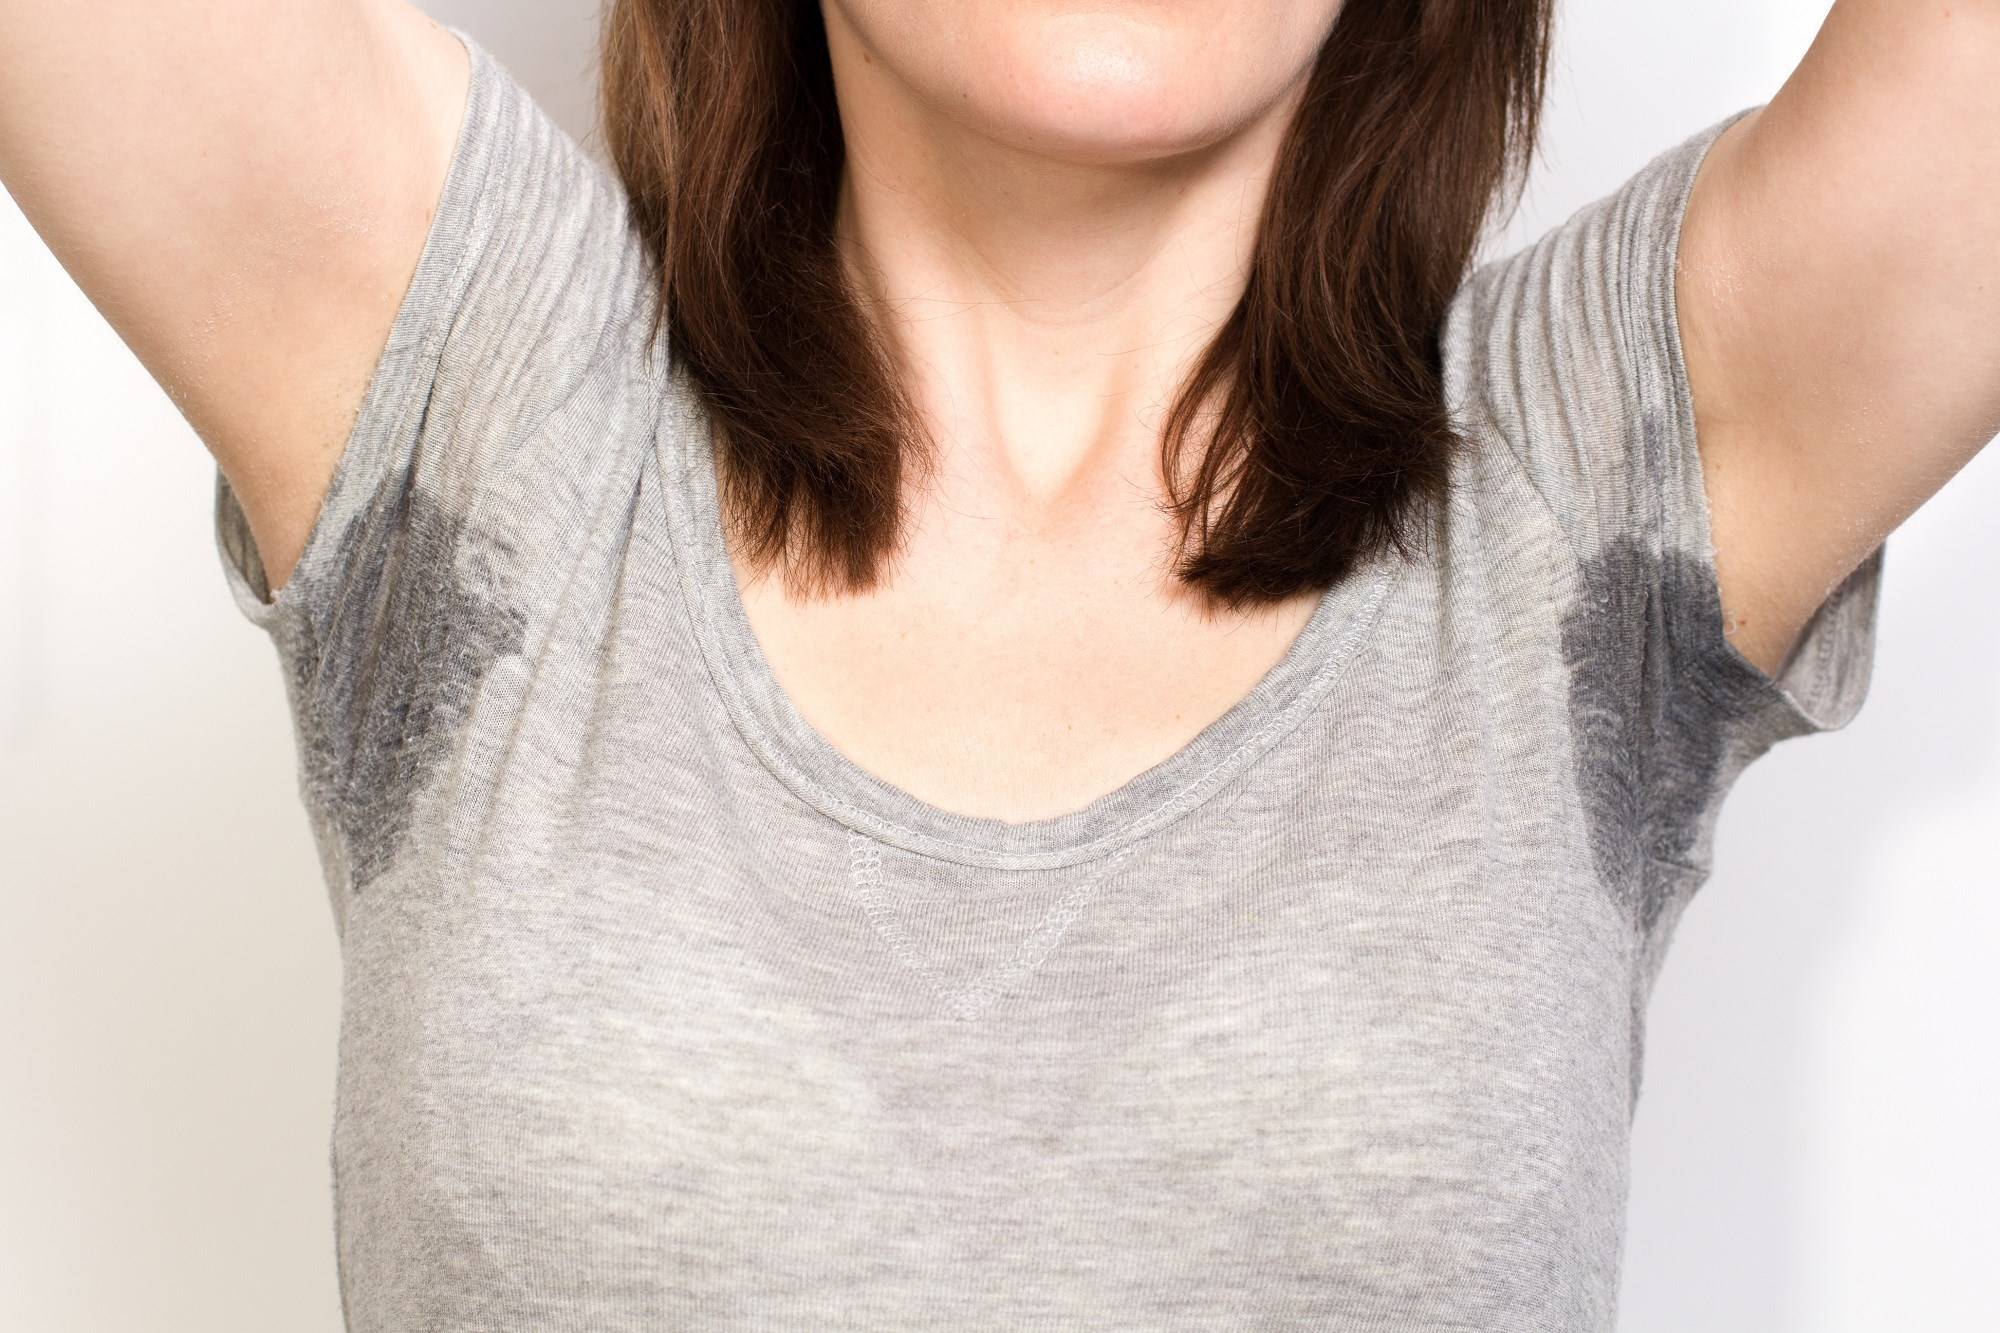 Obesity Associated With Increased Risk for Hyperhidrosis in Adolescents